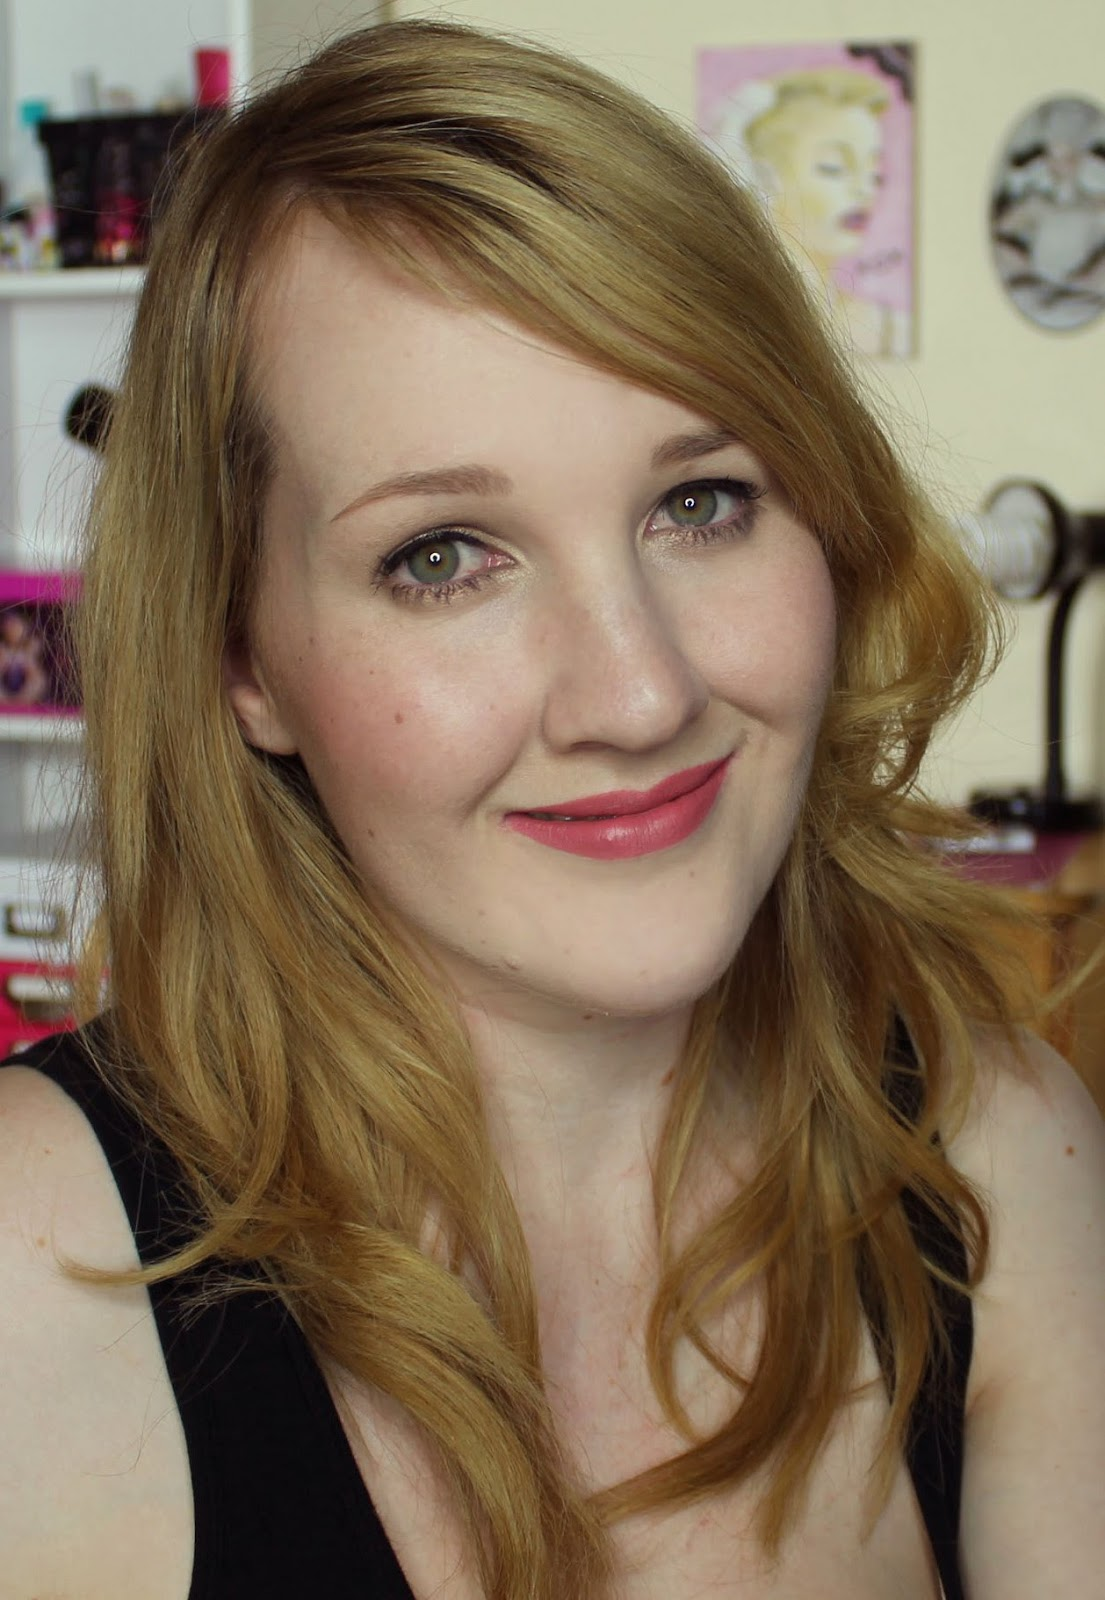 MAC Nouvelle Vogue Lipstick Swatches & Review